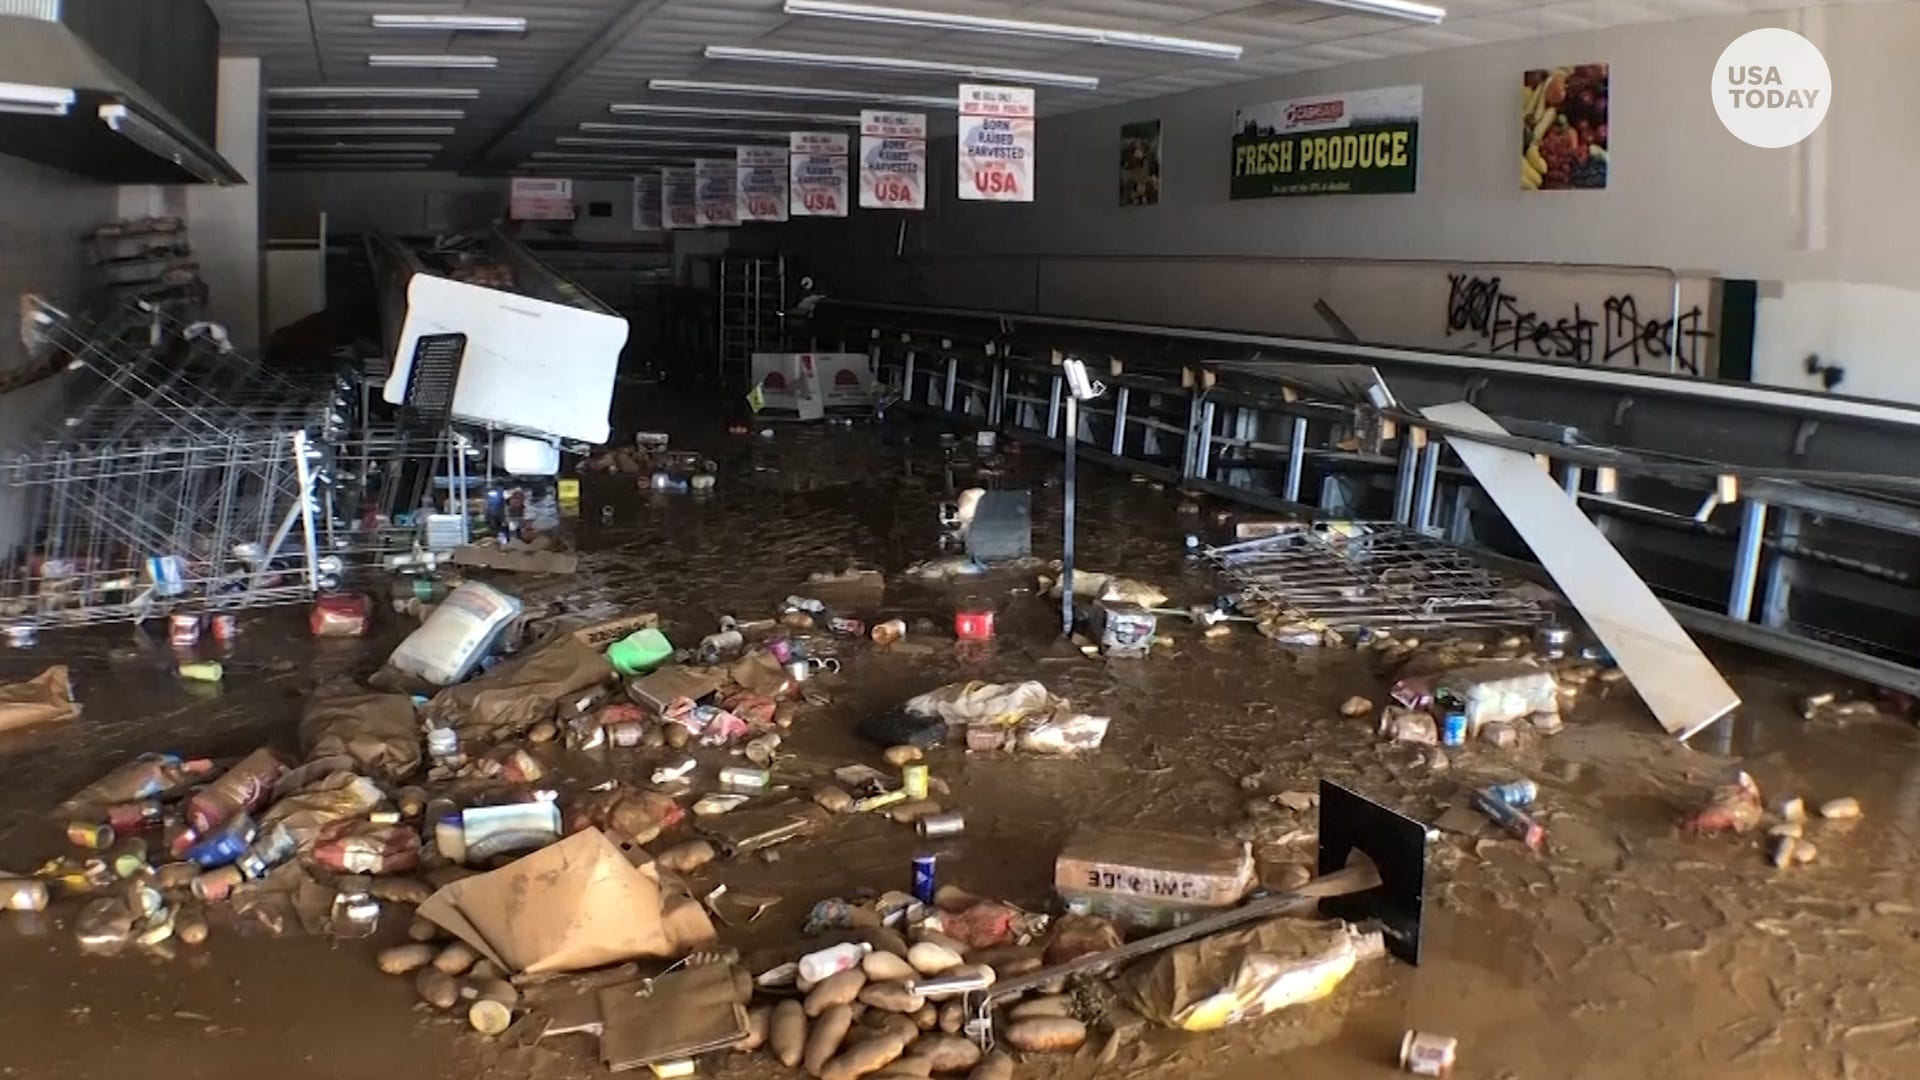 Many people are dead or missing after catastrophic flash floods struck all across Tennessee, and President Biden offers full federal support.